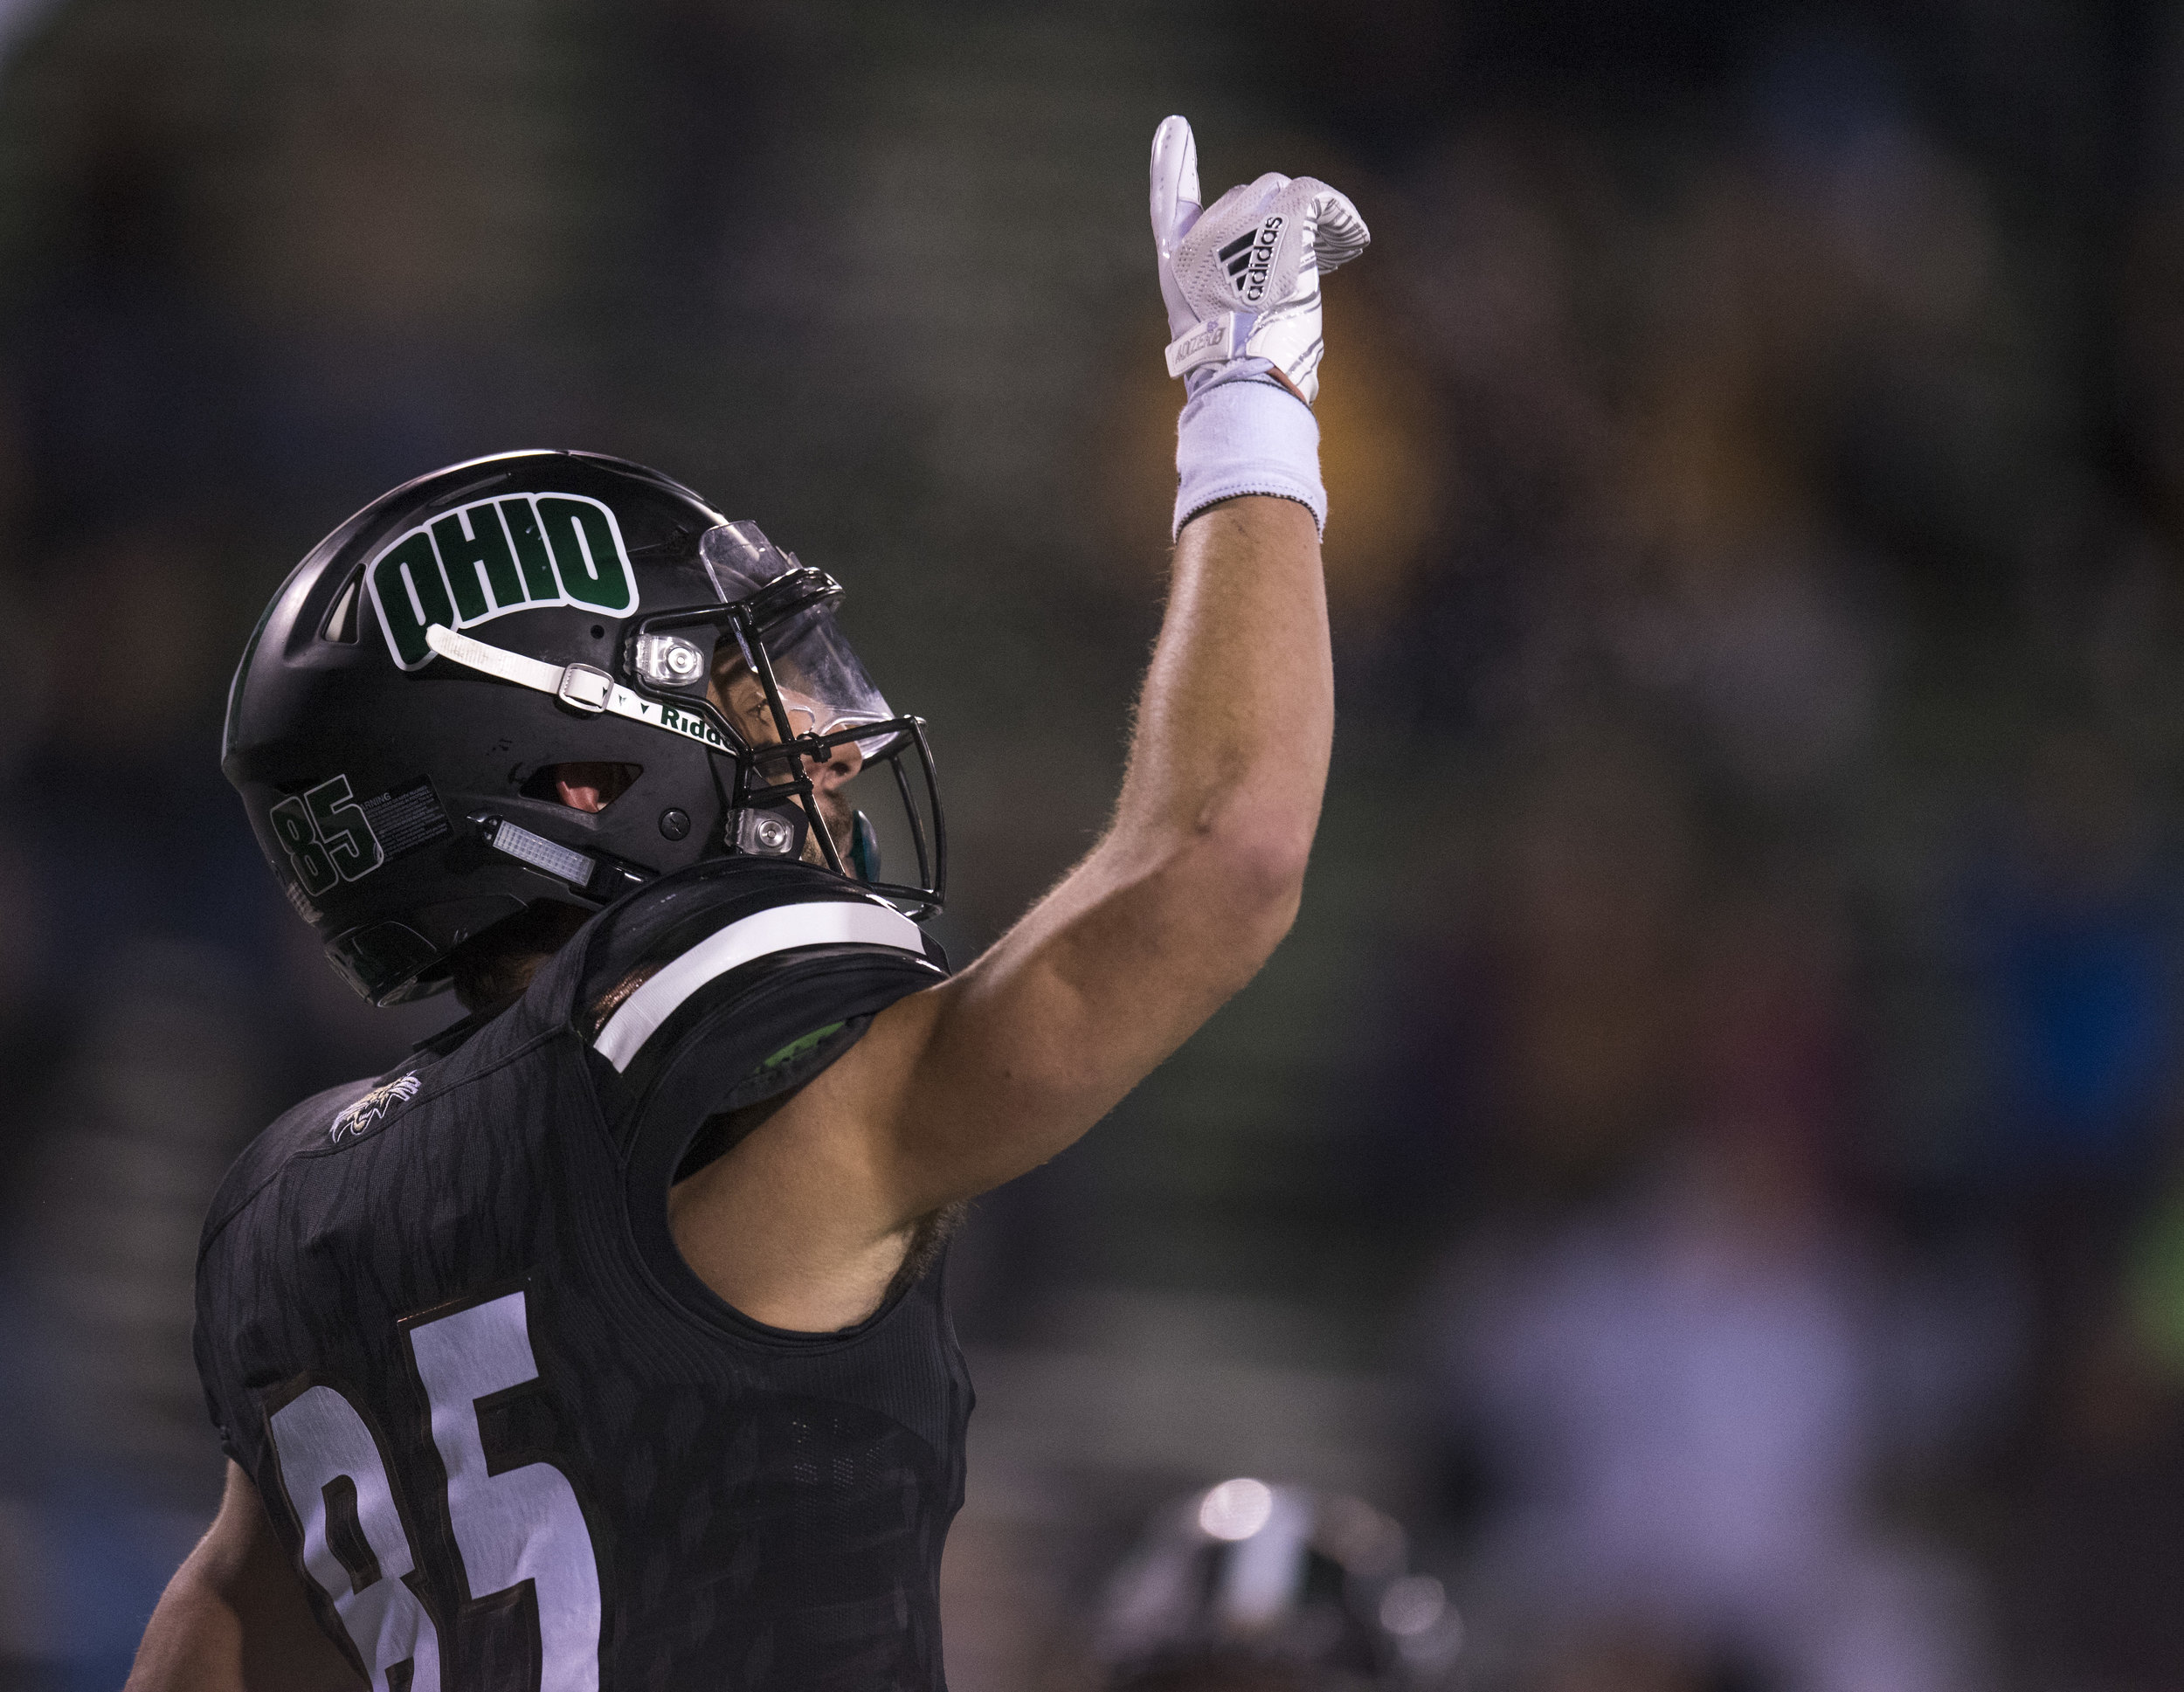 Brendan Cope celebrates after a touchdown during Ohio's game against Toledo on November 8, 2017. The Bobcats won 38-10.